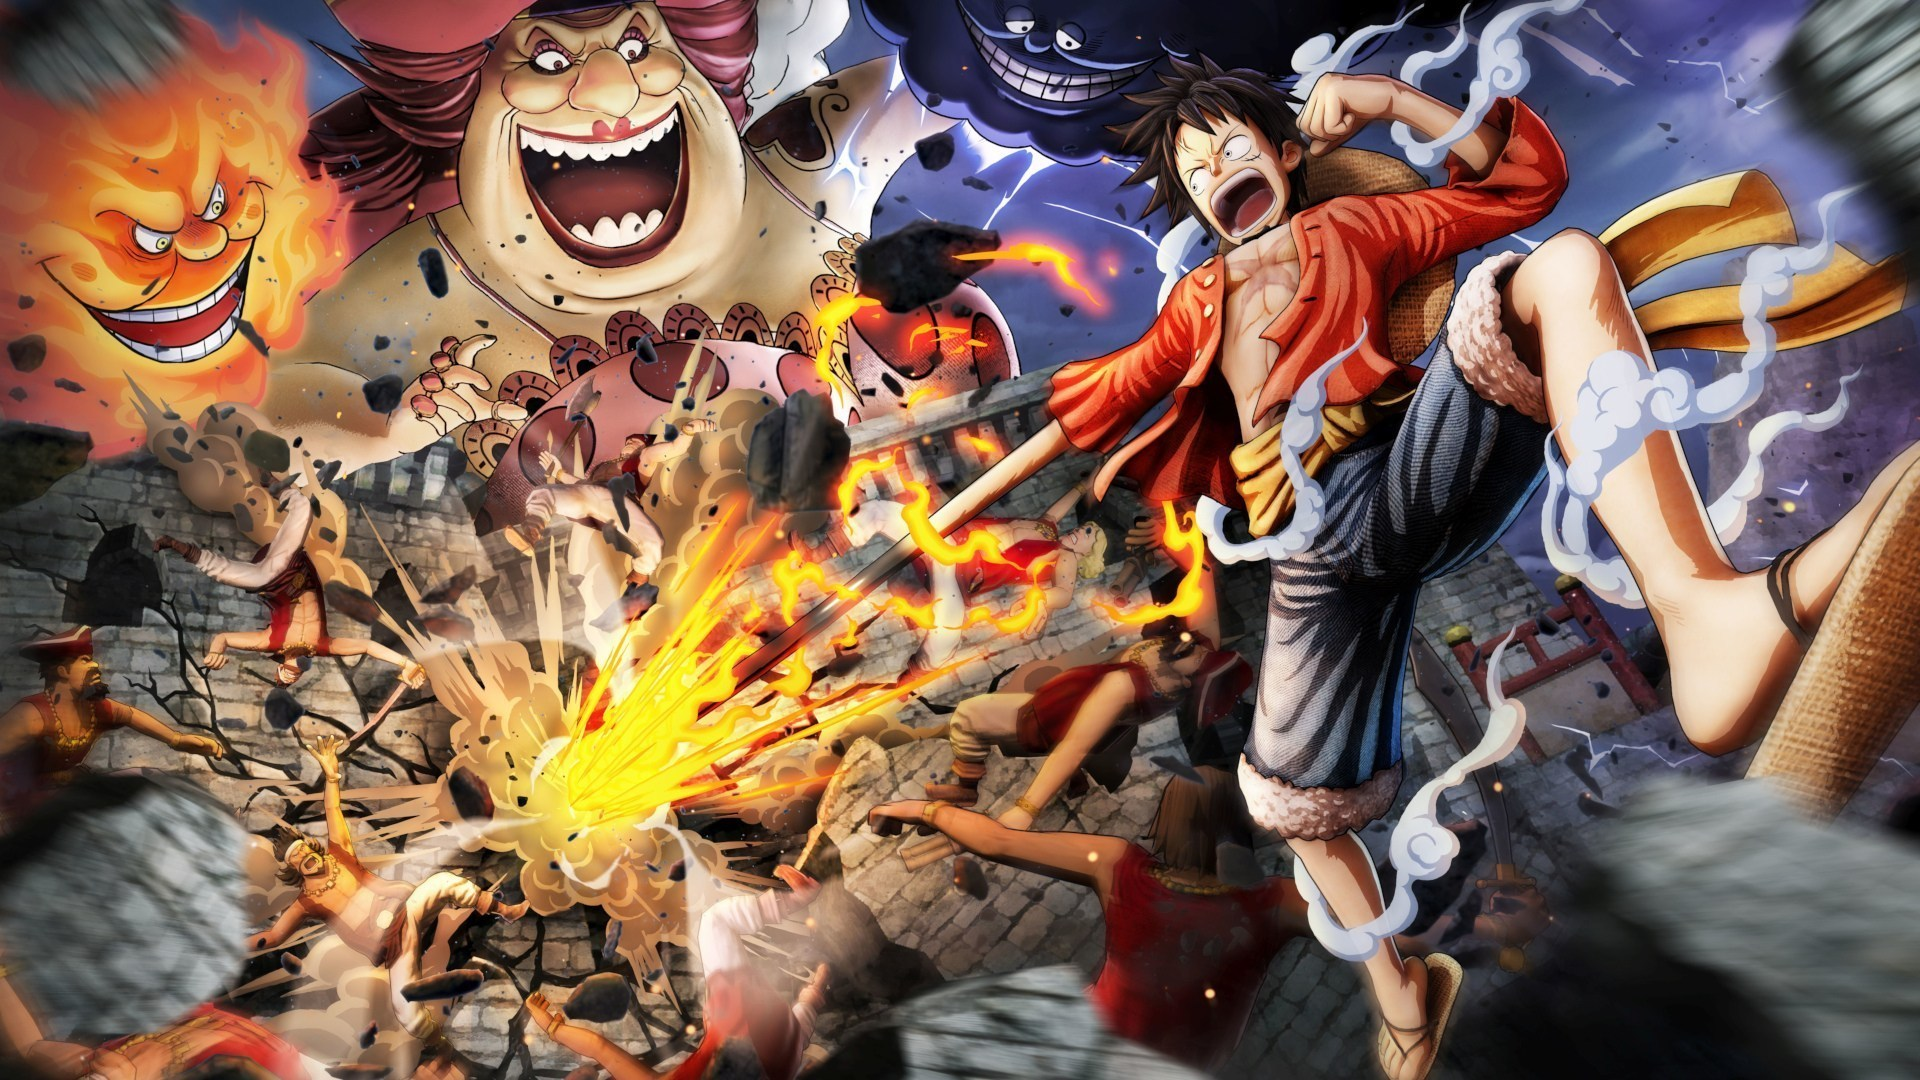 One Piece Pirate Warriors 4 Announced With a Trailer